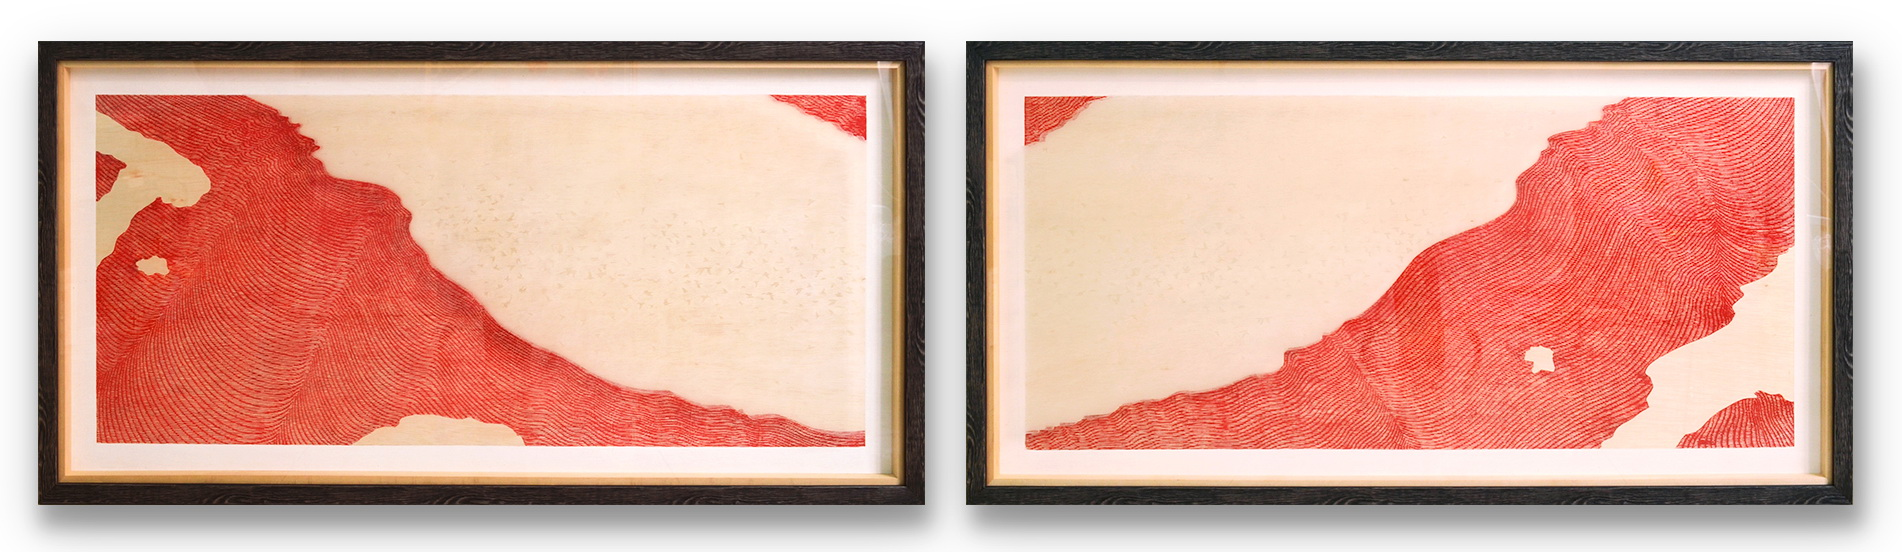 Transformation III ( Diptych )